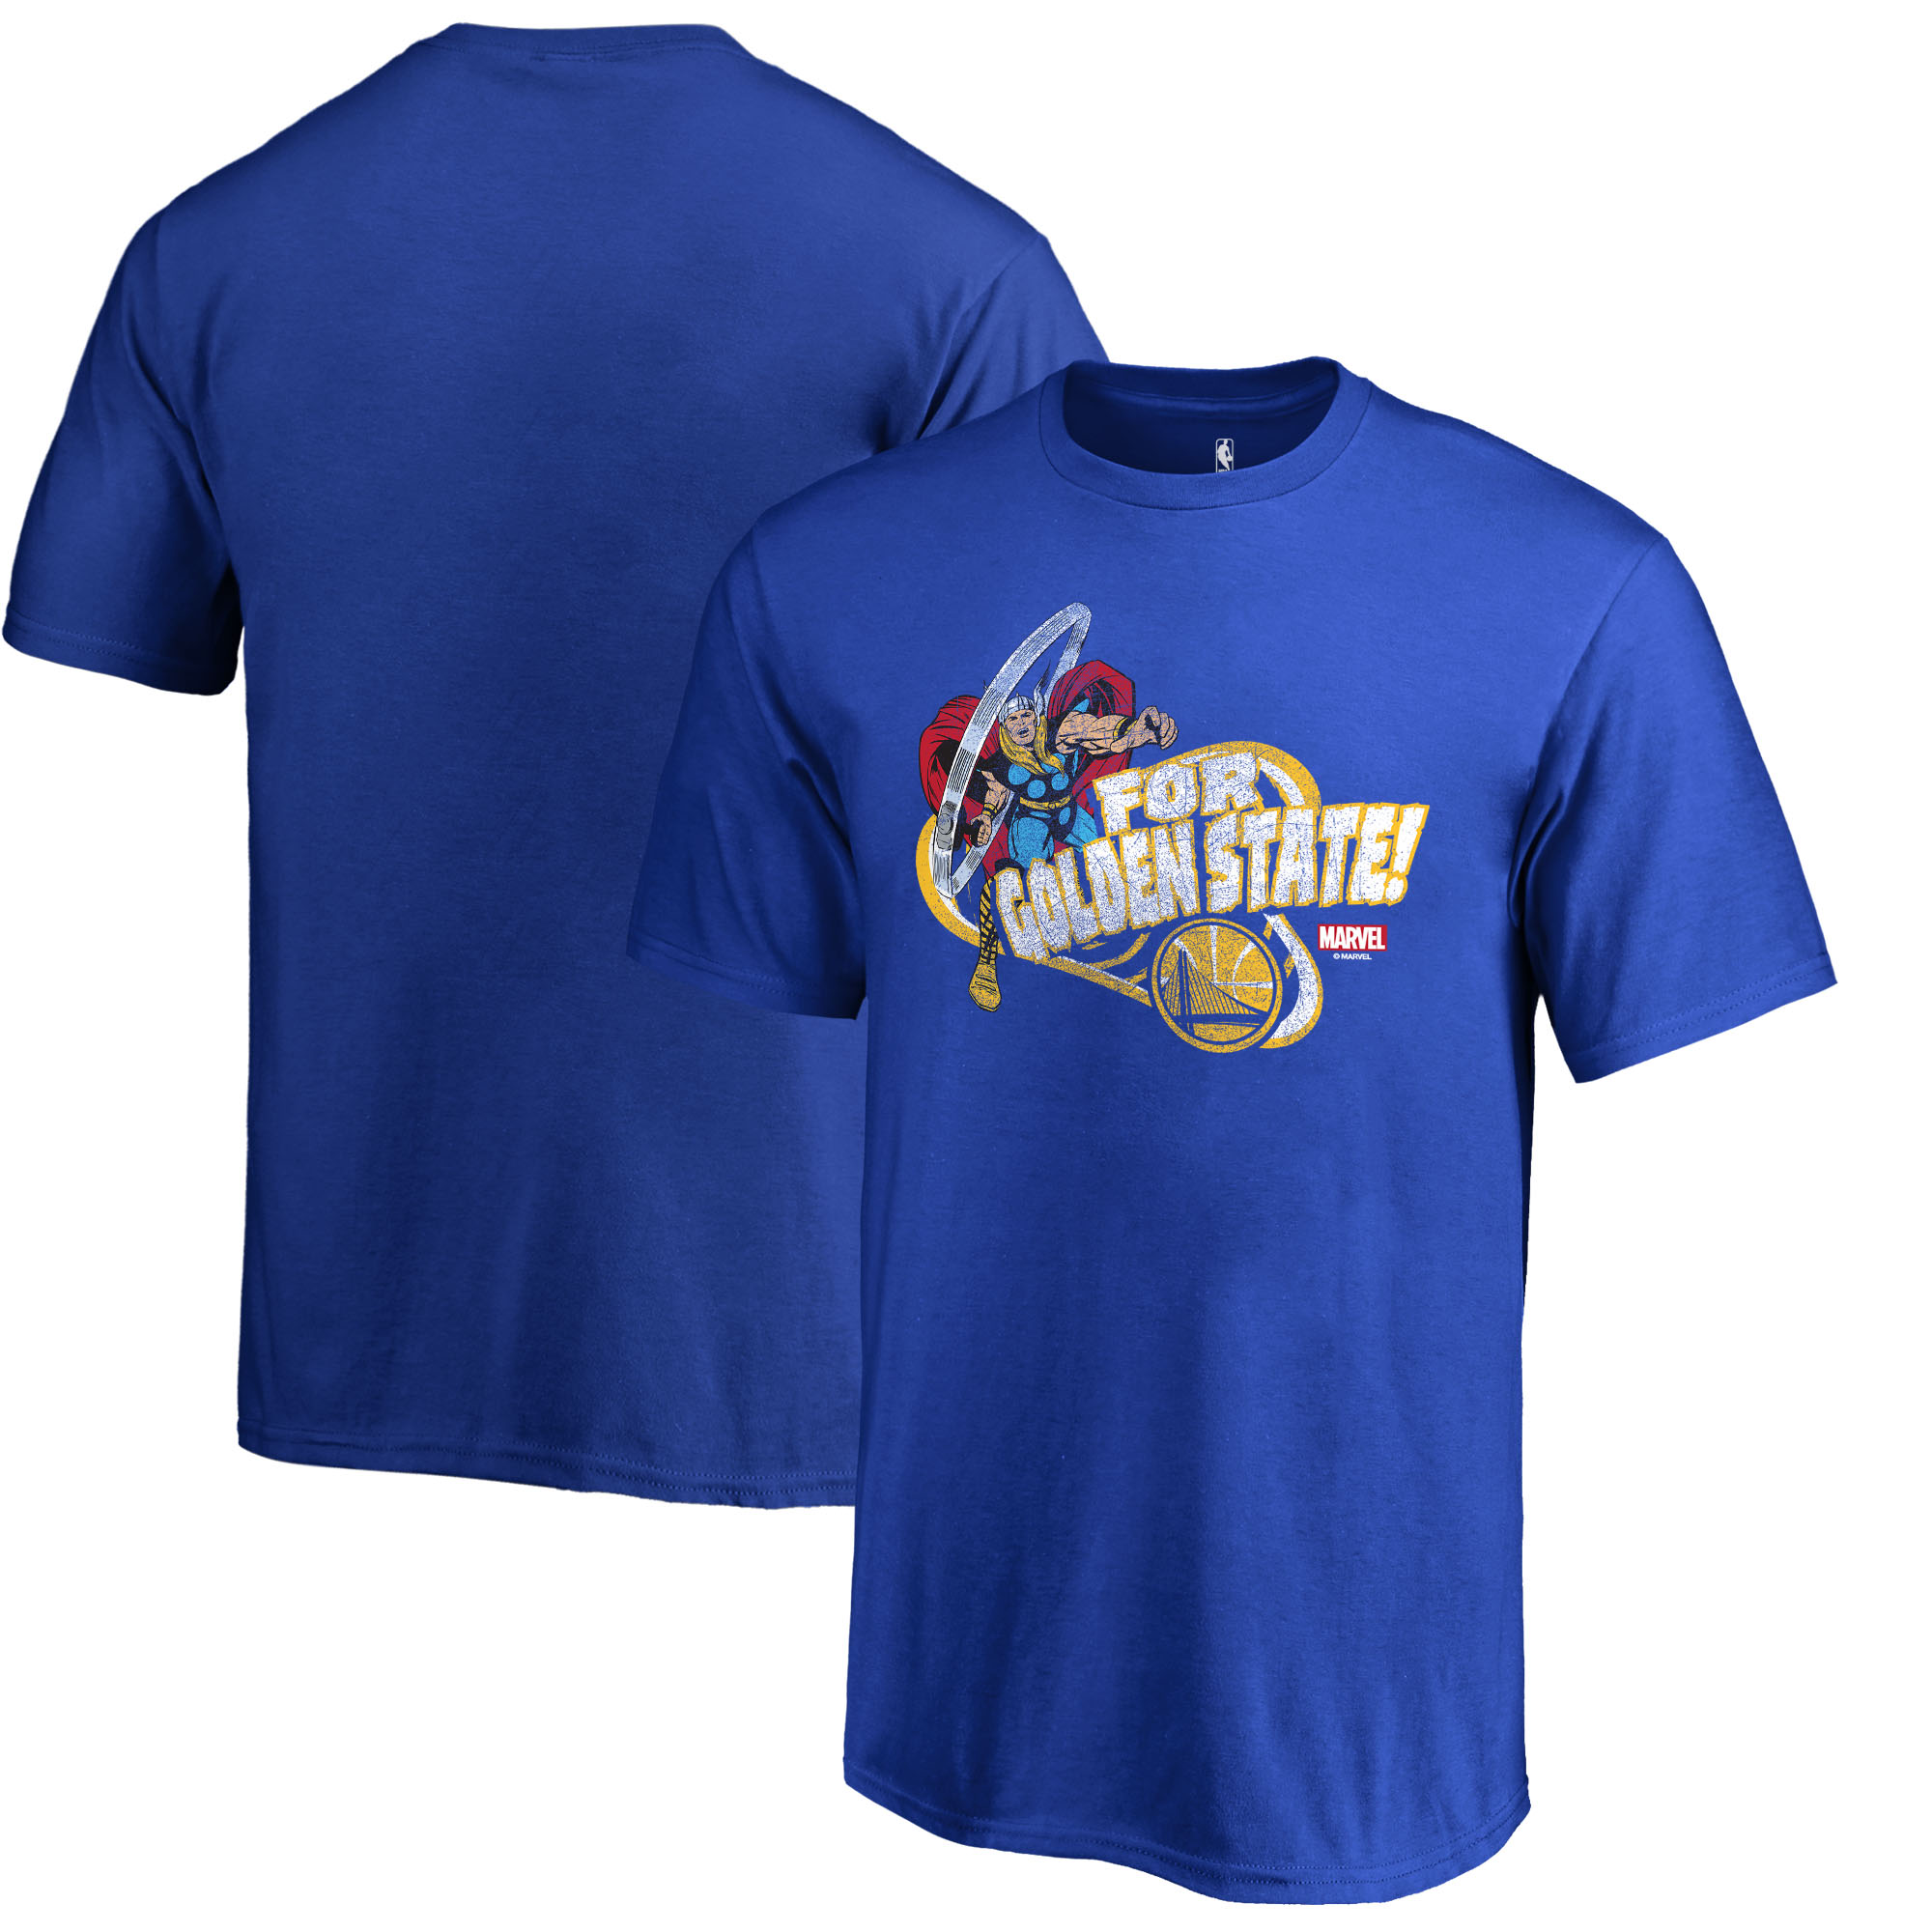 Golden State Warriors Fanatics Branded Youth Marvel Thor for Asgard T-Shirt - Royal